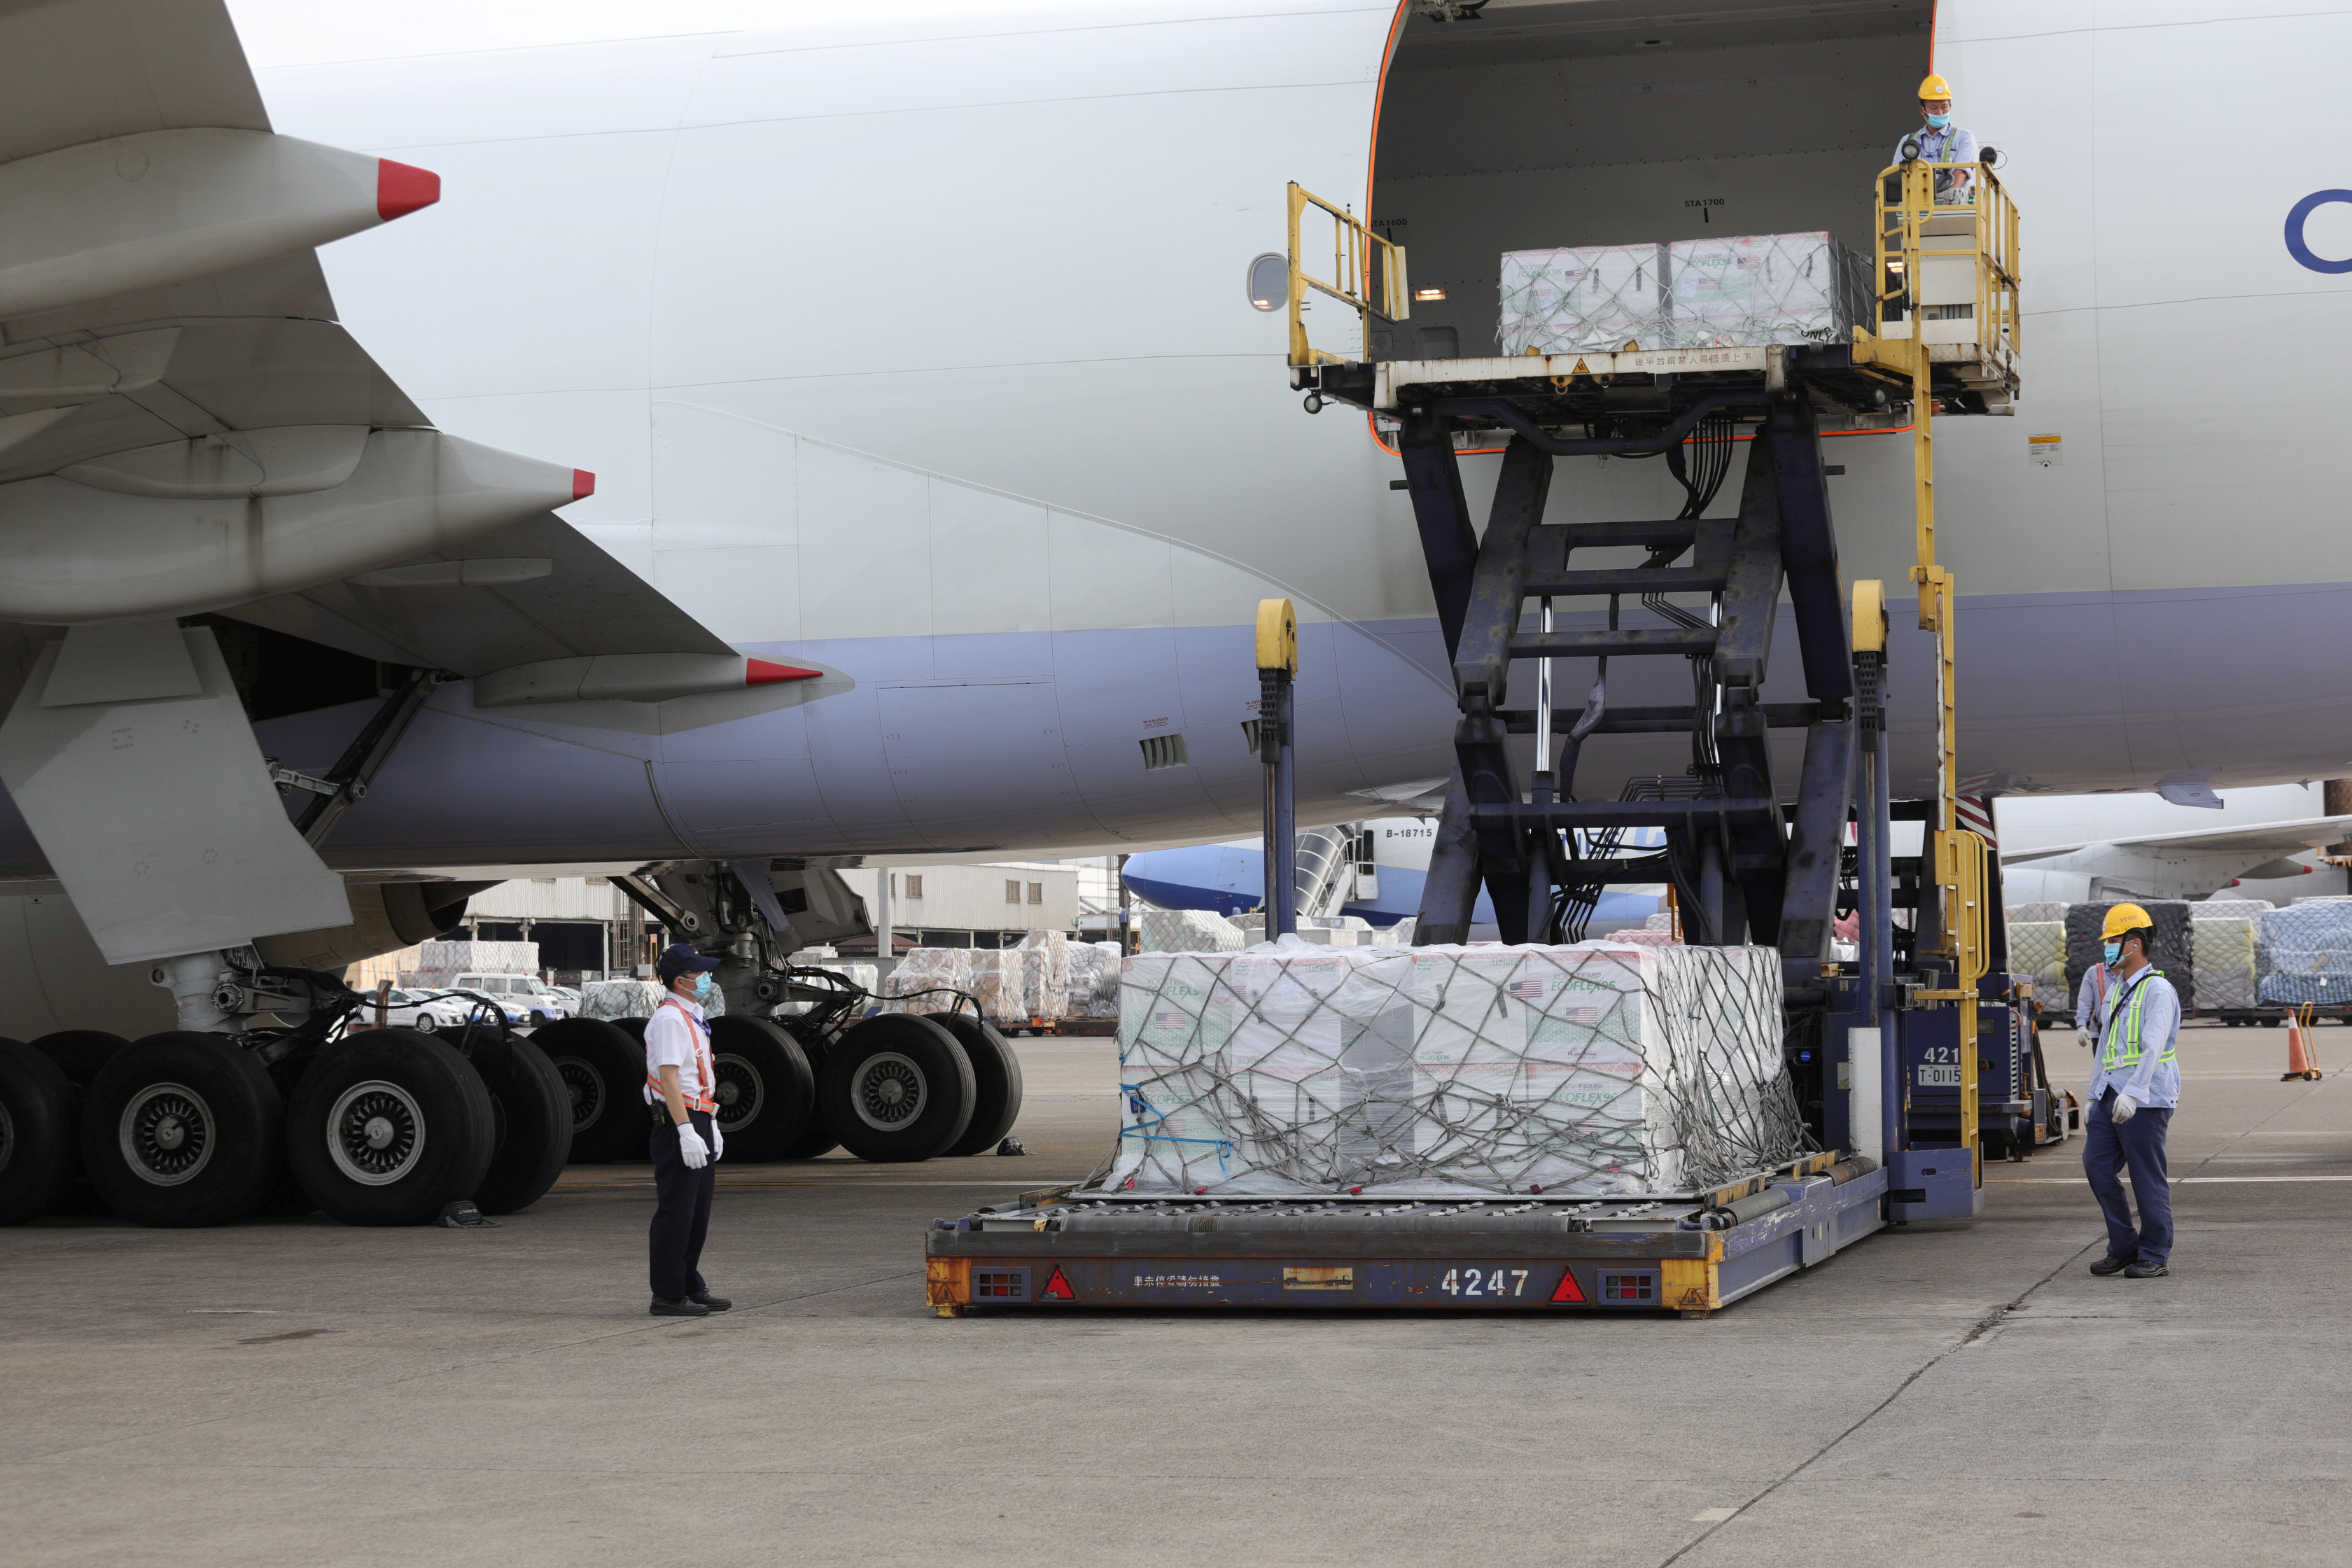 Workers unload Moderna vaccines against the coronavirus disease (COVID-19) shipped from the United States, at Taoyuan International airport in Taoyuan, Taiwan, June 20, 2021. Taiwan Centers for Disease Control/Handout via REUTERS